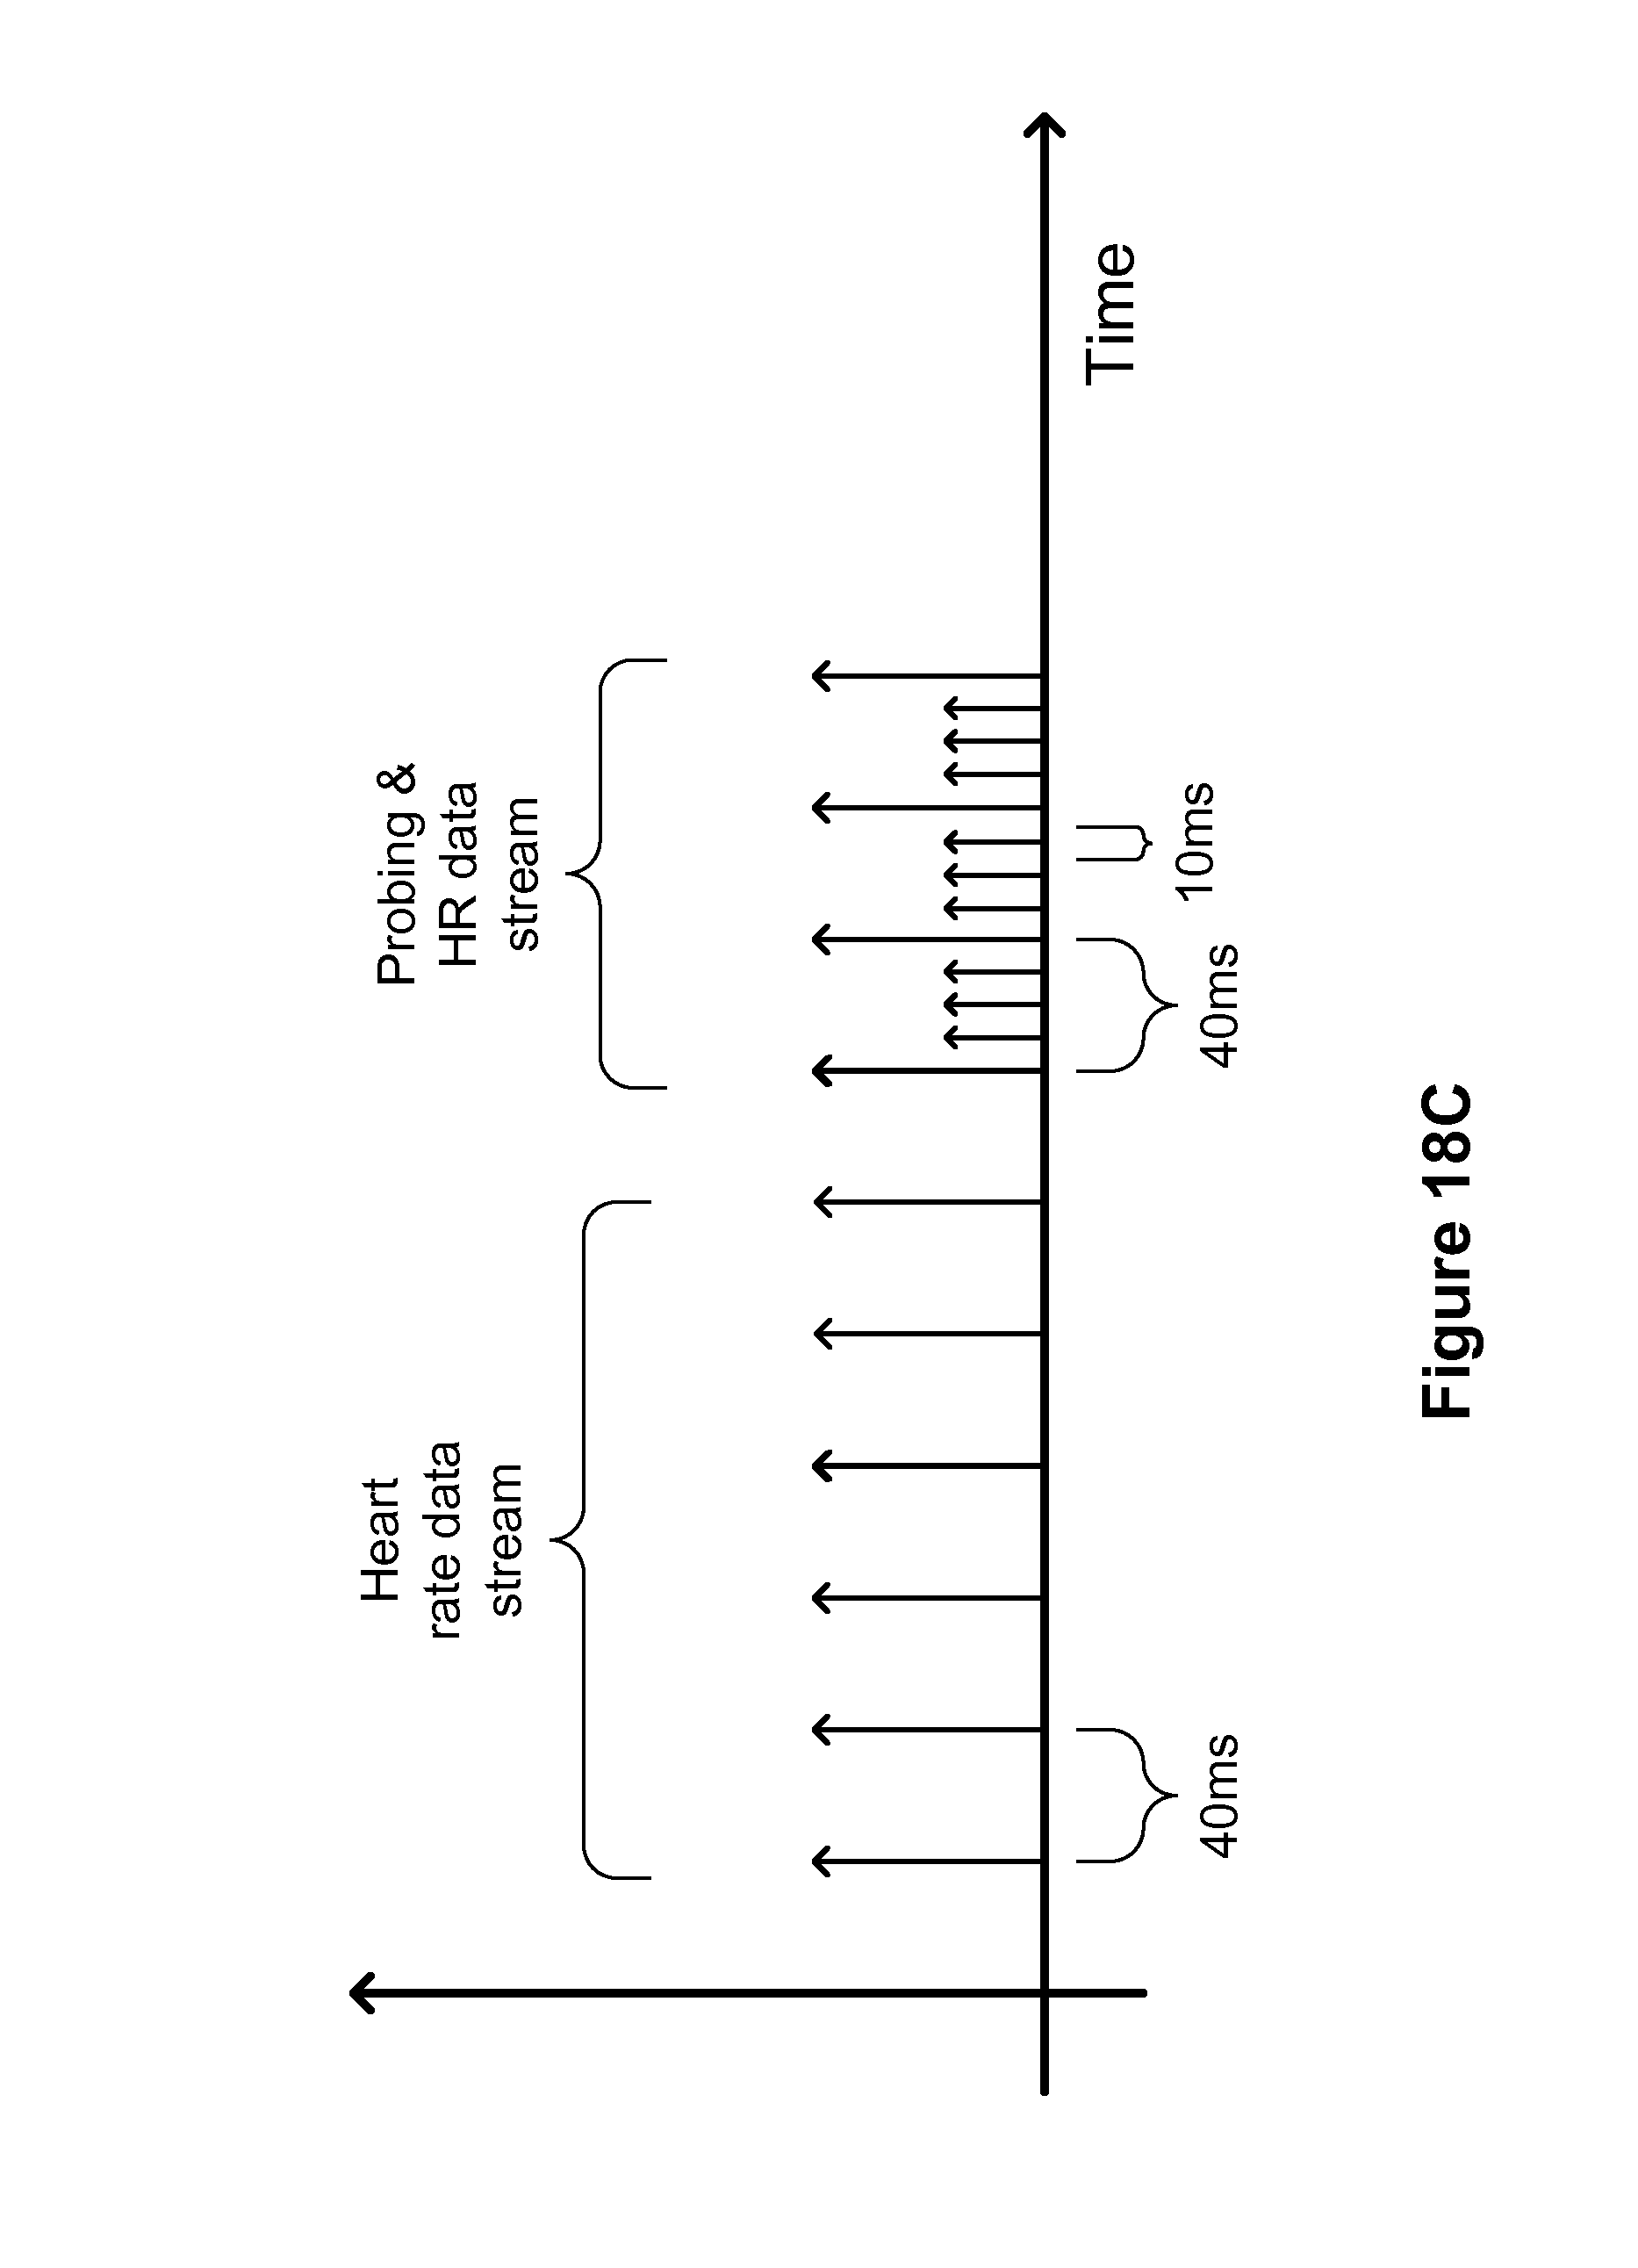 Patent Us 8920332 B2 Figure 3 Schematic For The Heartrate Monitor Sensor Inductor Litigations